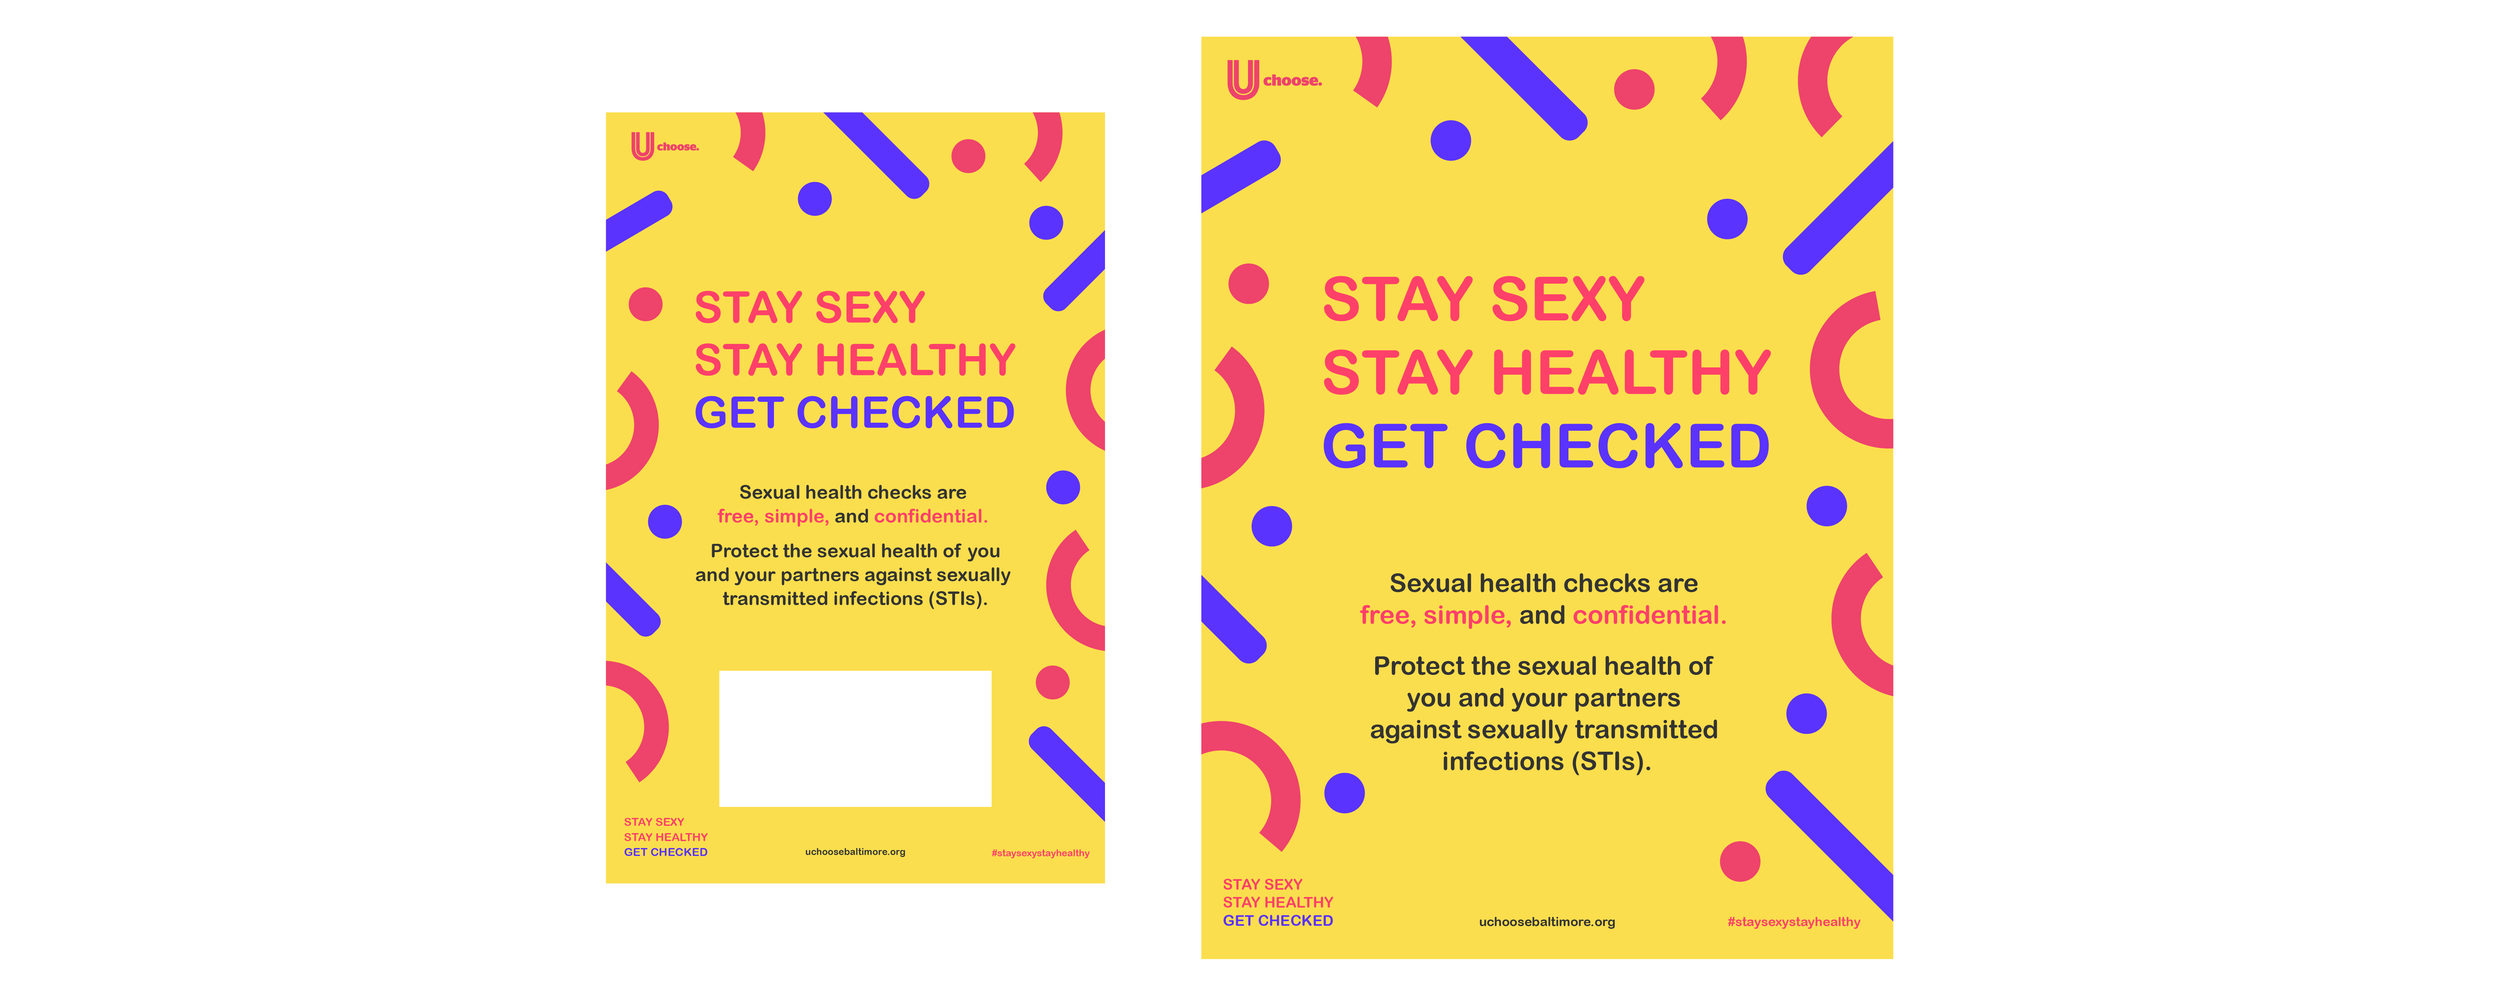 Stay Sexy, Stay Healthy Branded Posters